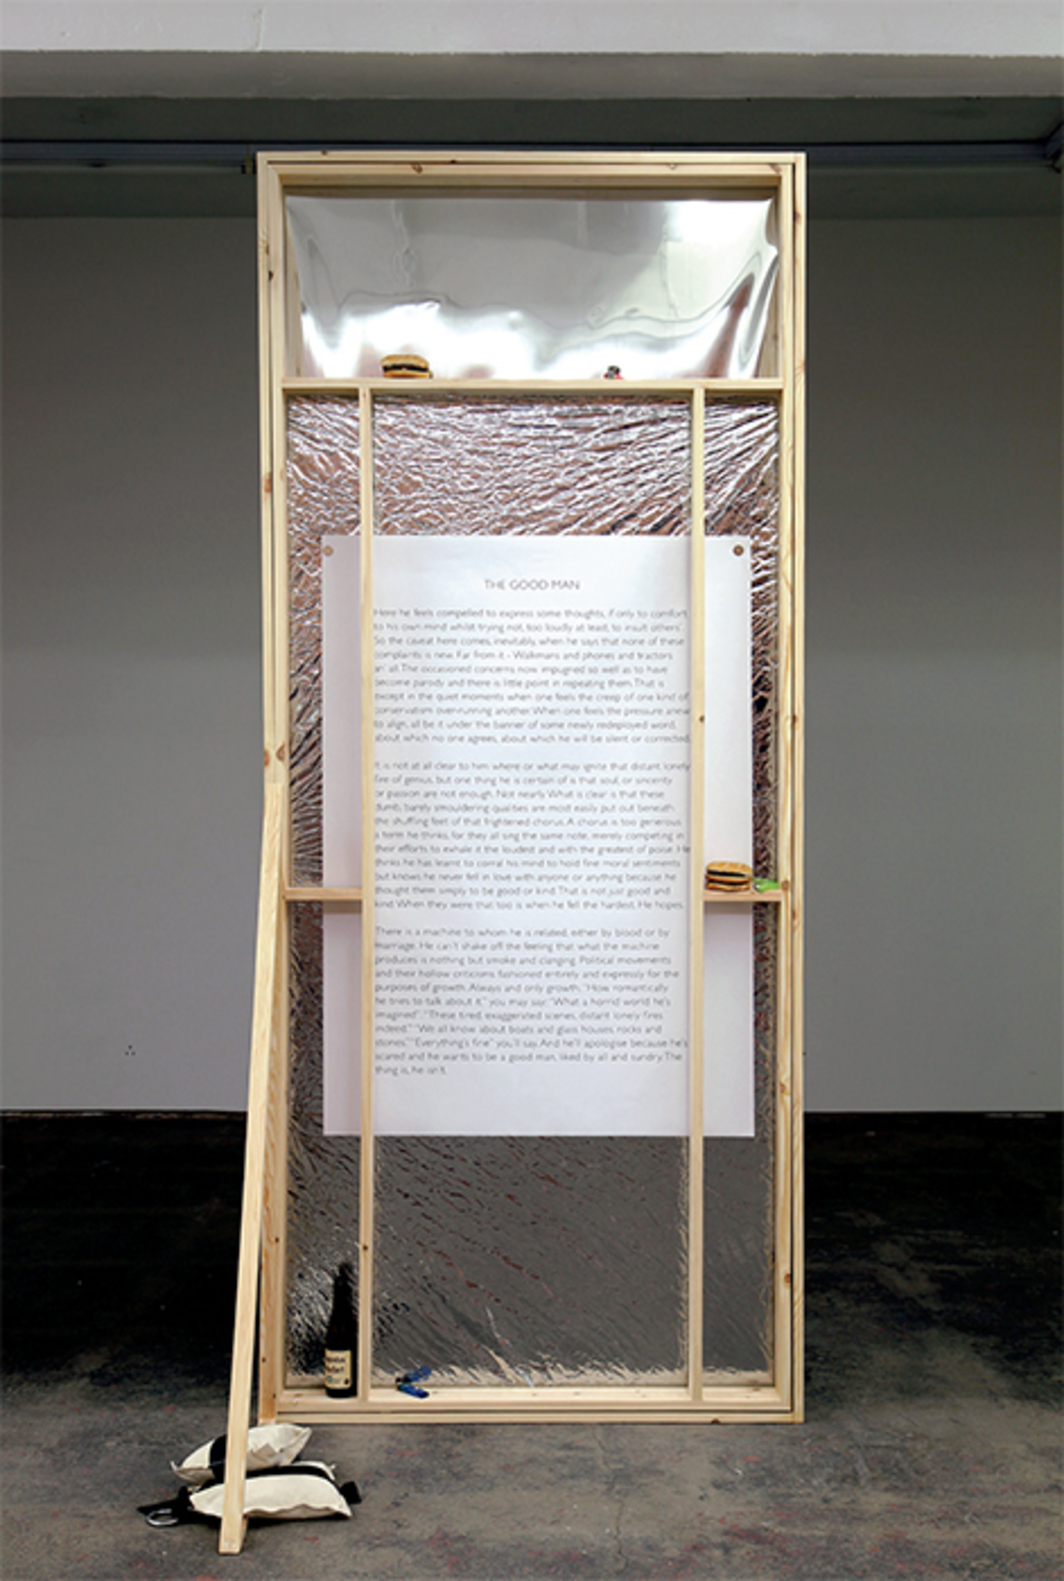 "David Raymond Conroy, Broadway Flat (The Good Man), 2015, wood, privacy film, magnets, sandbags, wide-format print, plotter print, dehydrated Big Mac, dehydrated Quarter Pounder, lighters, Trappistes Rochefort bottle, 94 1/2 × 35 3/8 × 29 1/2""."